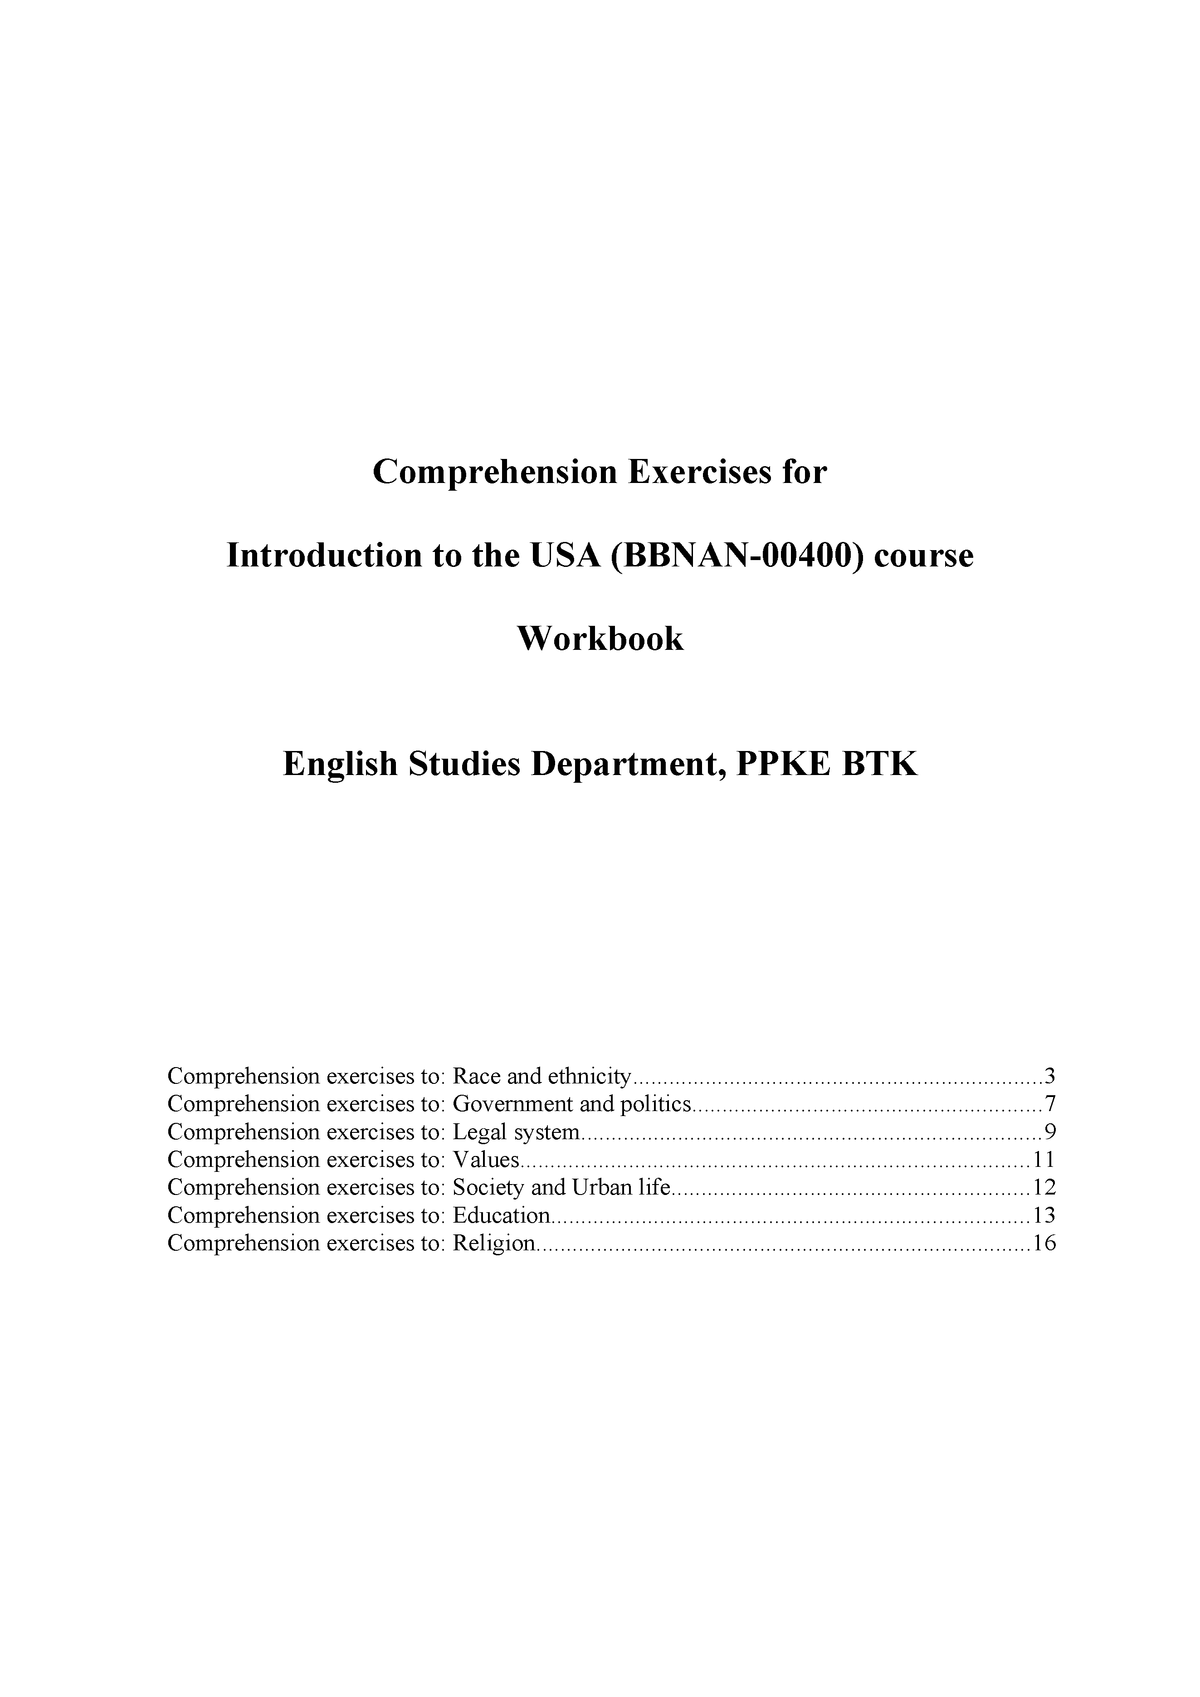 03Compr workbook USA - 01140: English Teaching - StuDocu